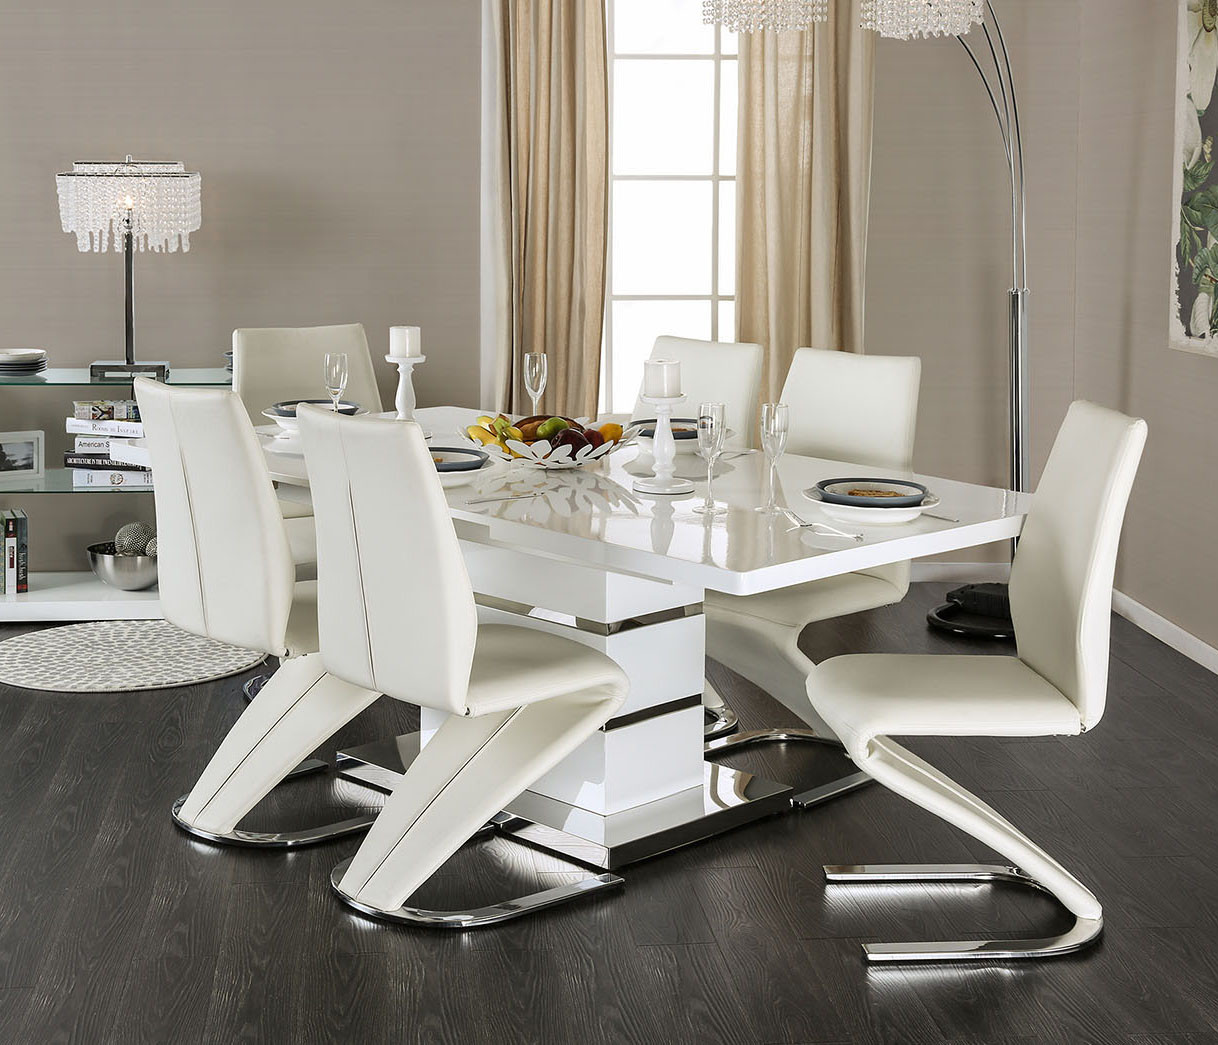 Midvale Cm3650t White Dining Set White Amp Black